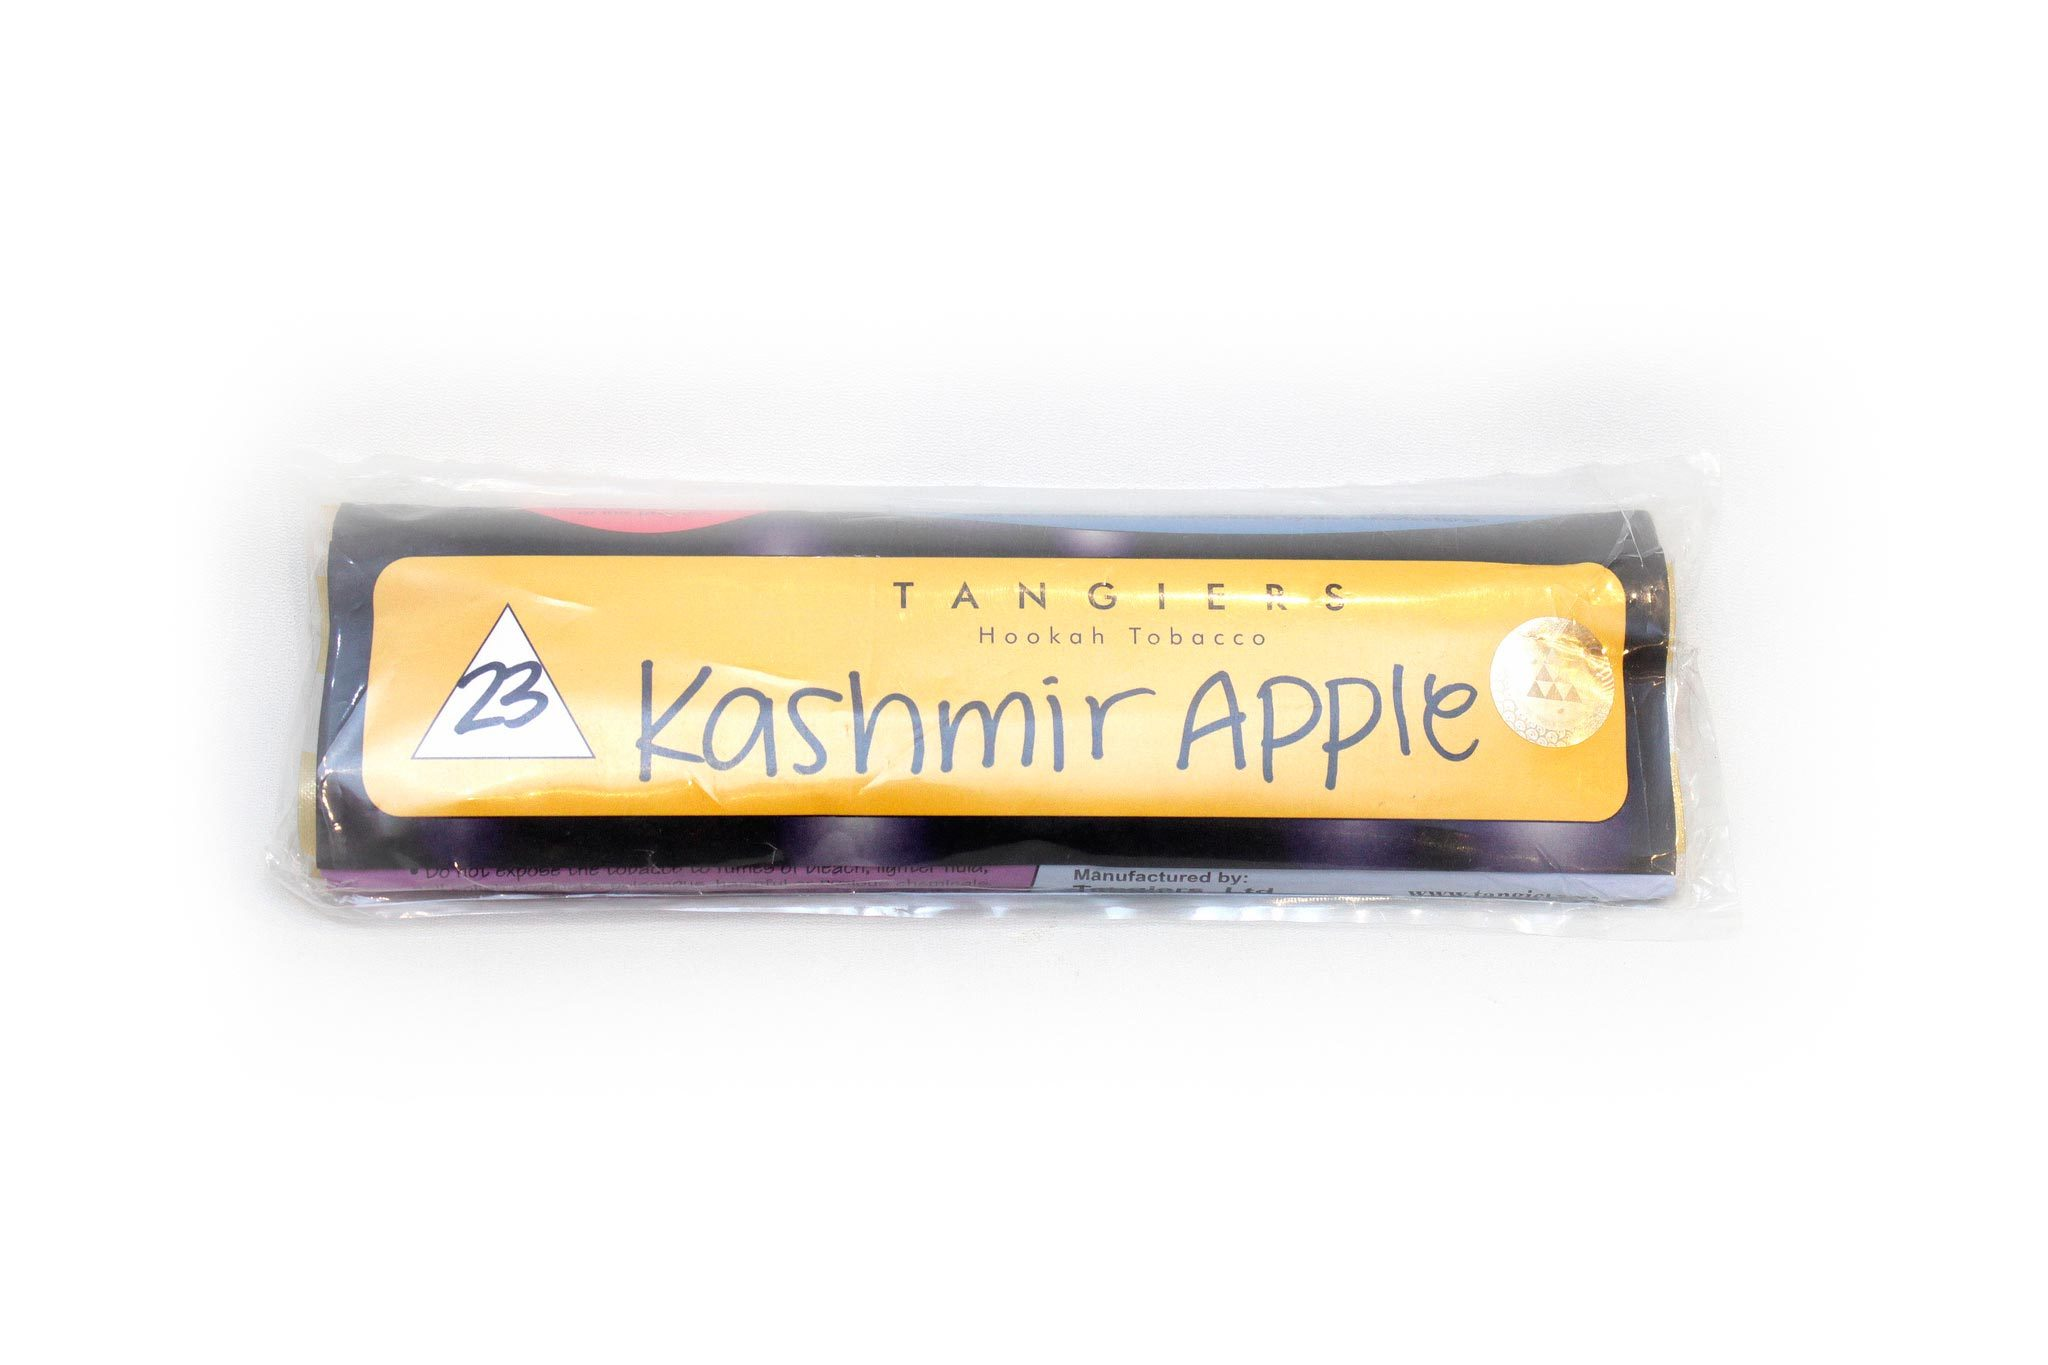 Табак для кальяна Tangiers Noir (желт) 23 Kashmir Apple 250 гр.